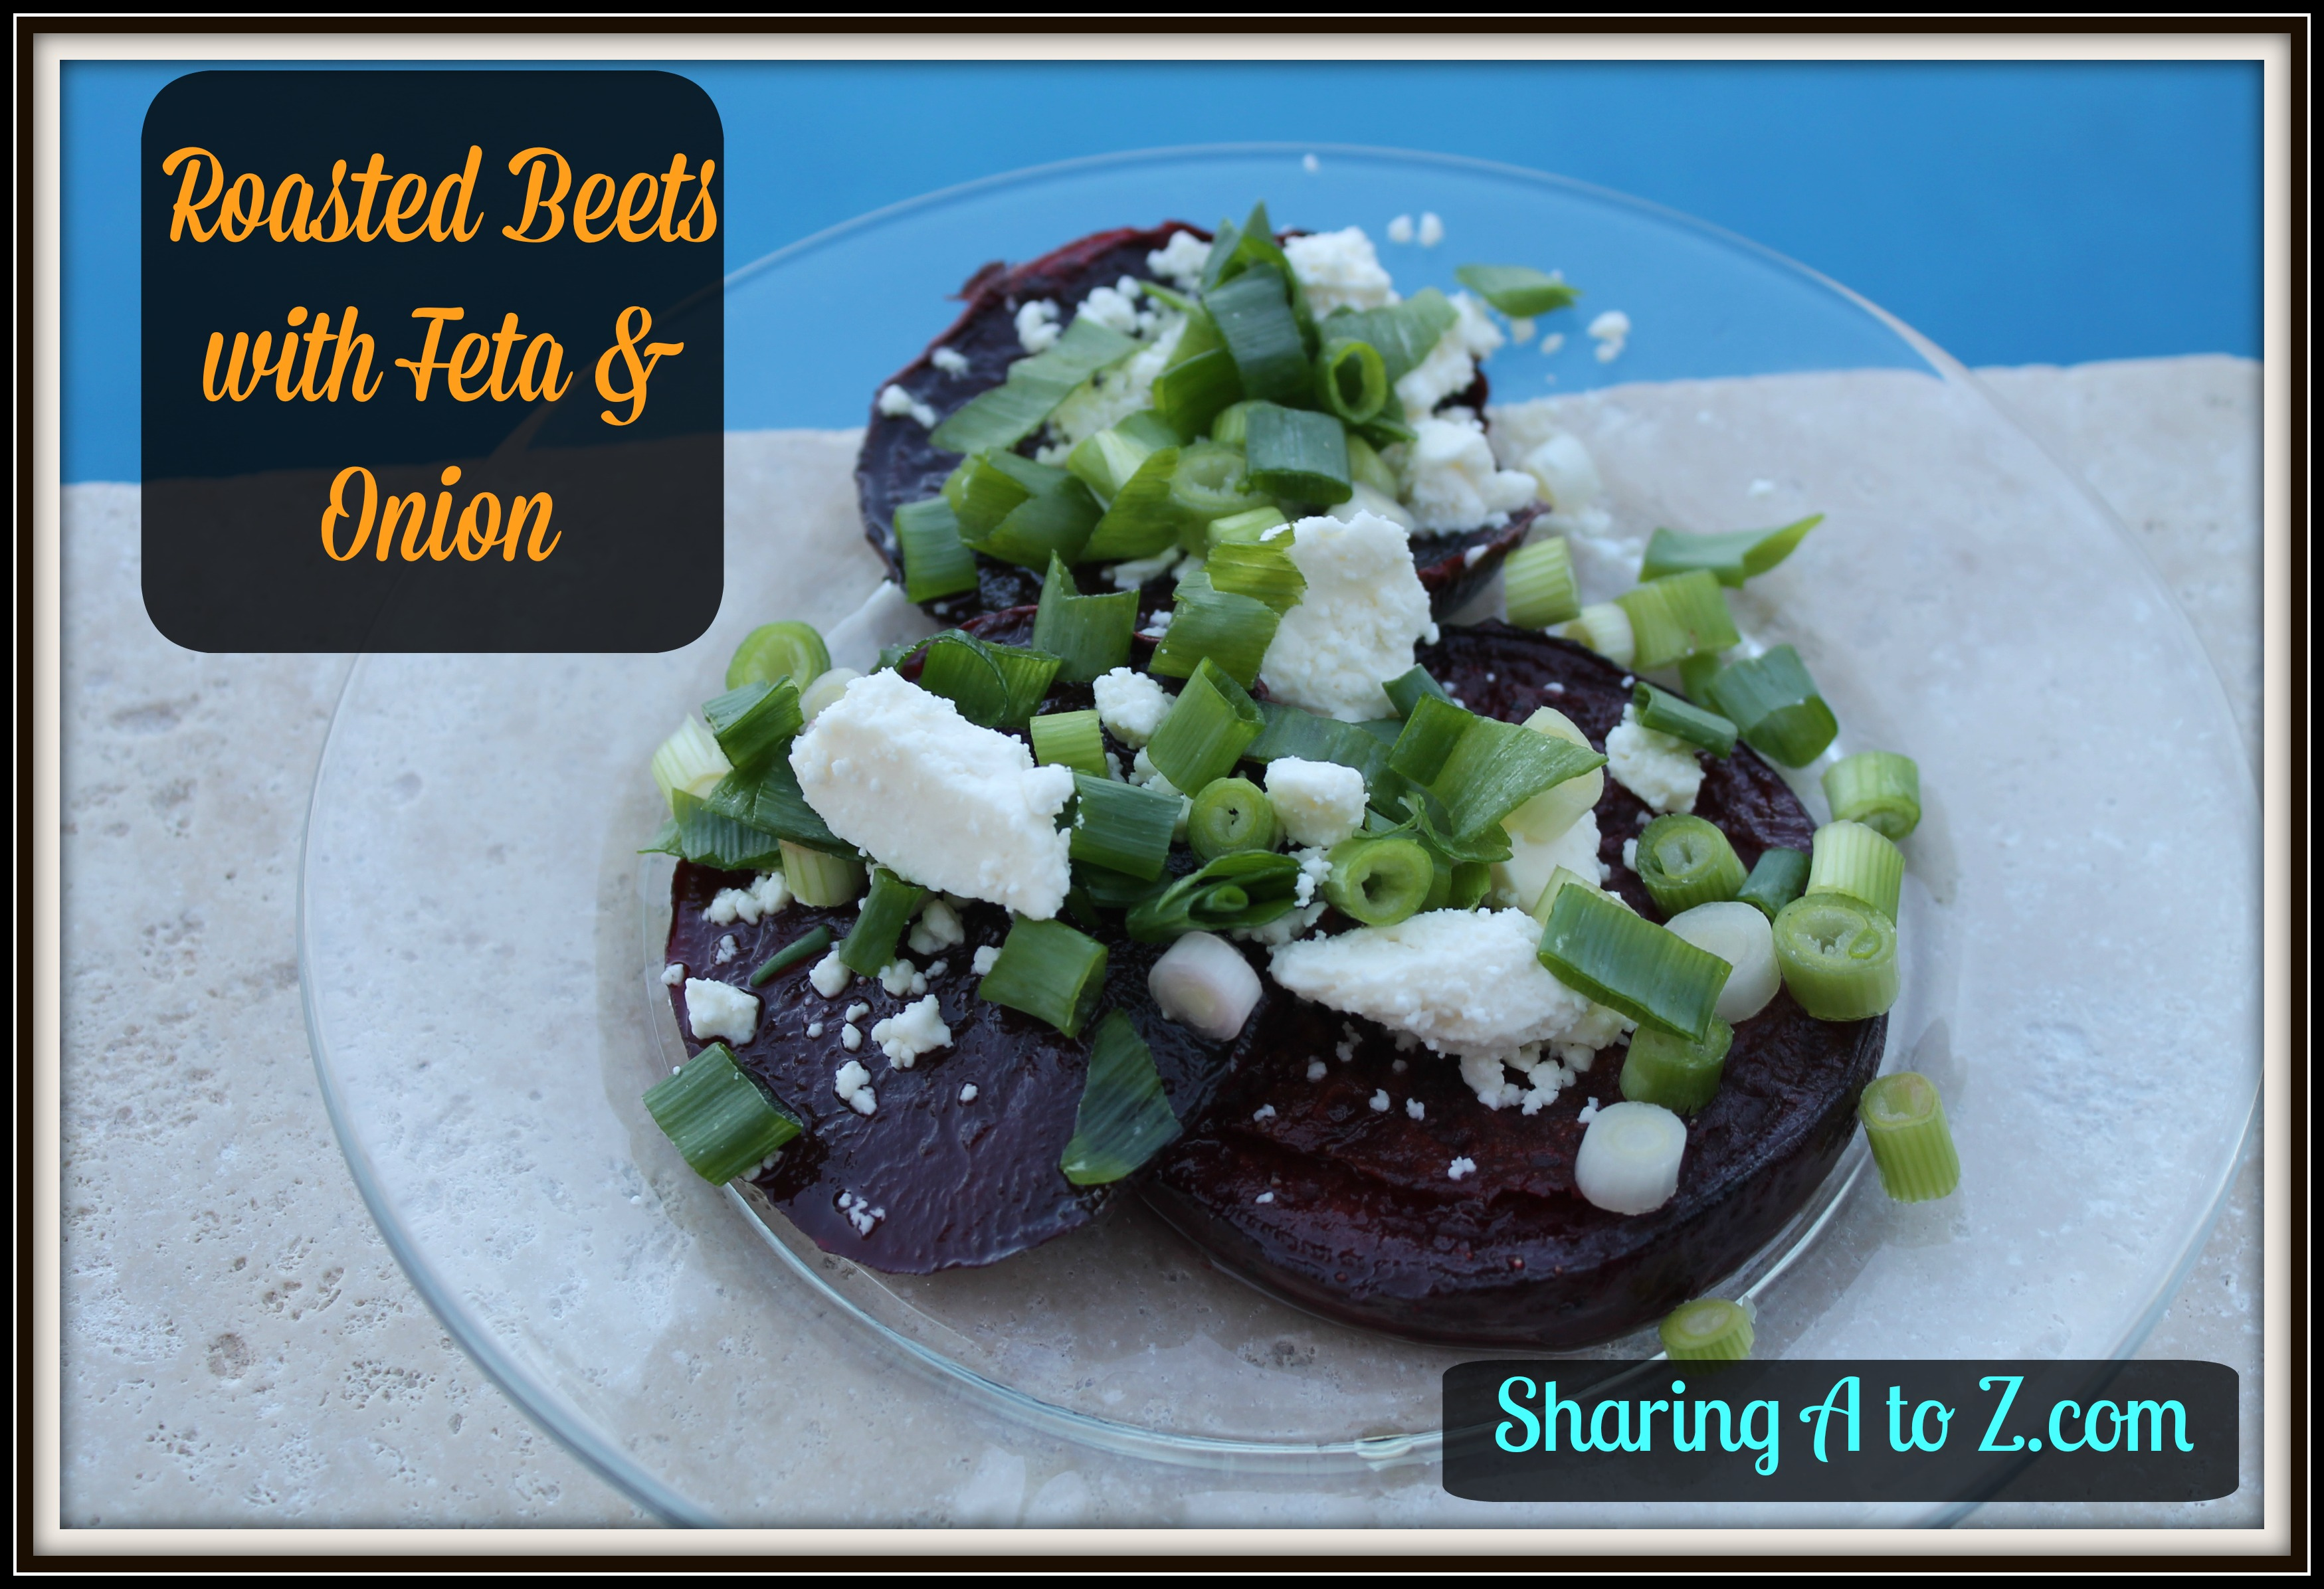 Roasted beets with feta and onion | Sharing A to Z